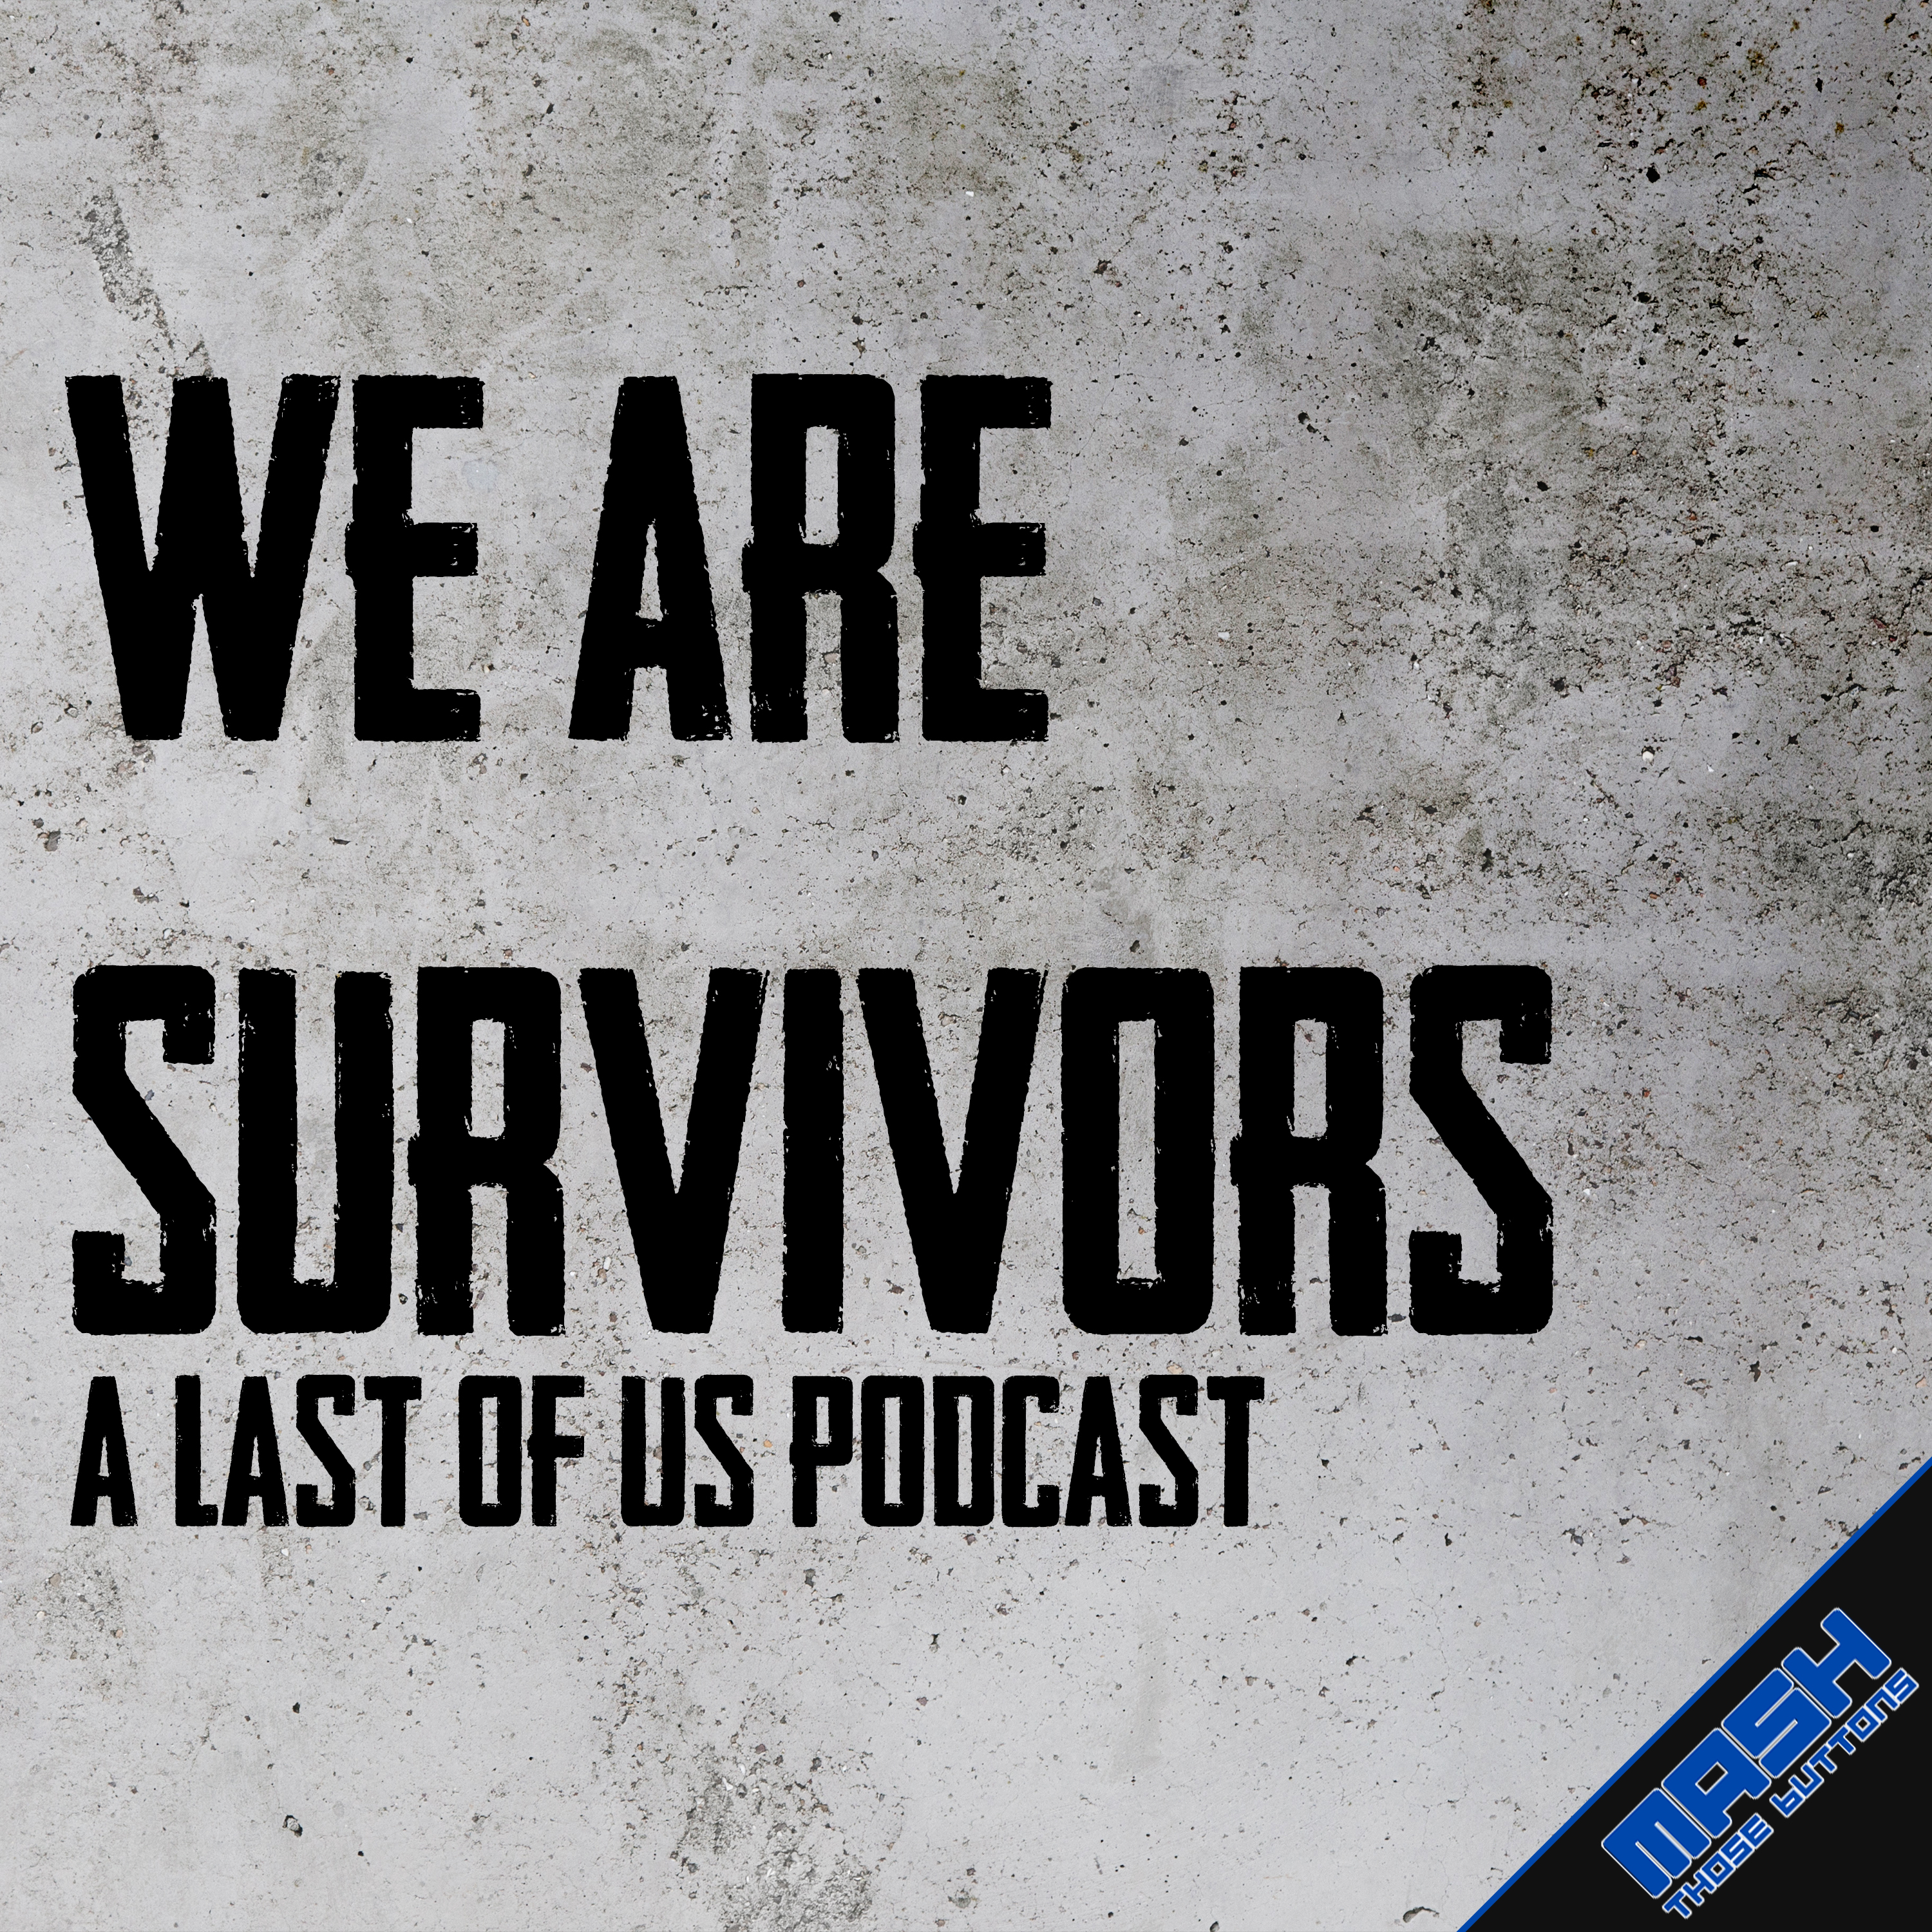 We Are Survivors: A Last of Us Podcast